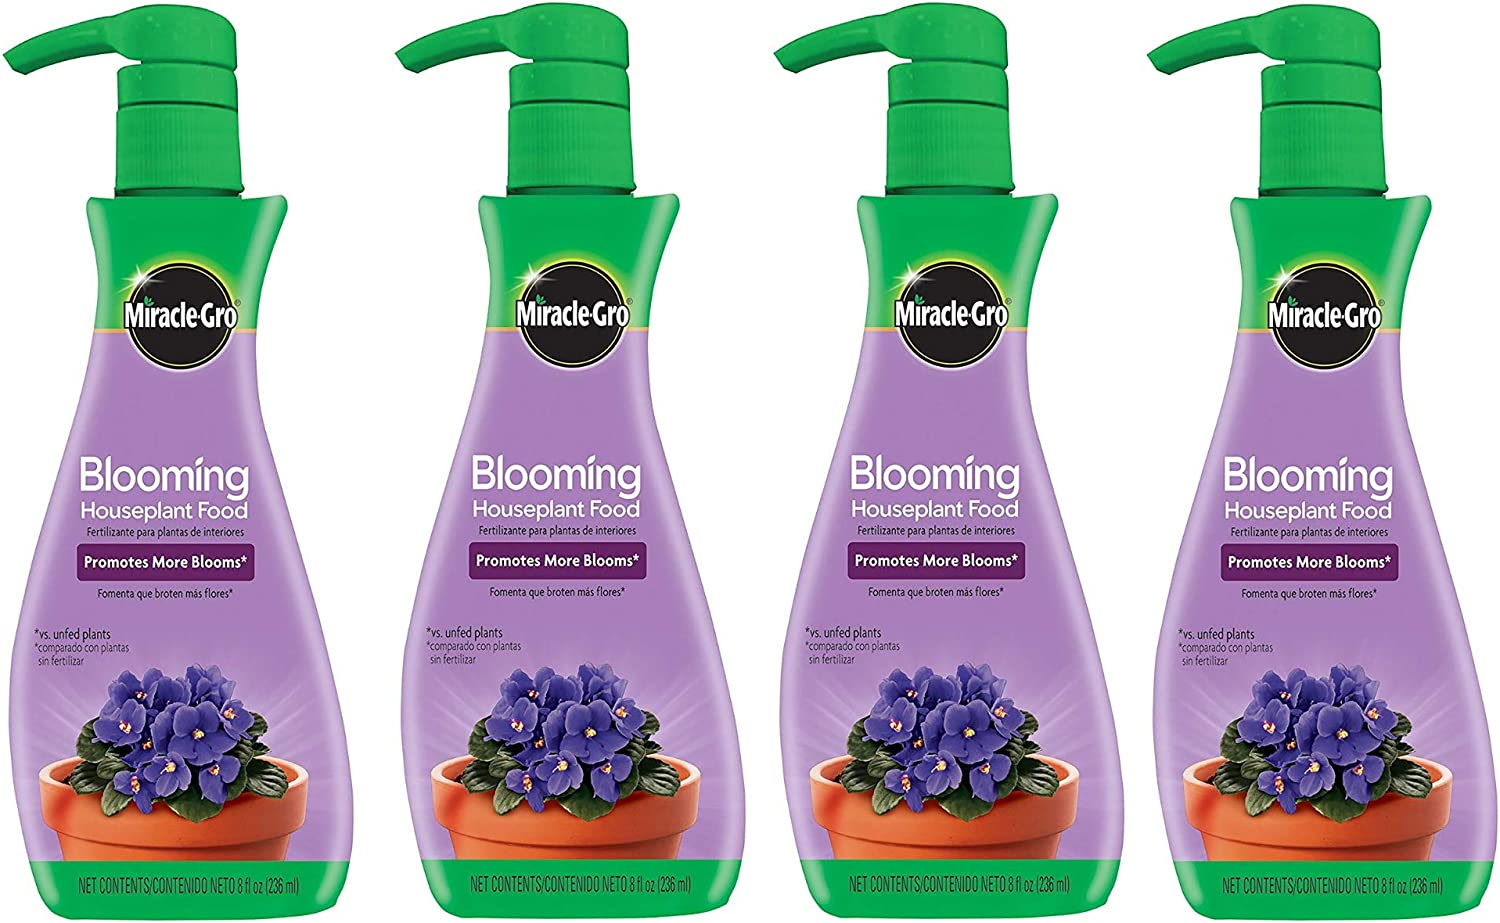 Miracle-Gro Blooming Houseplant Food, 8 oz, Plant Food Feeds All Flowering Houseplants Instantly, Including African Violets, 4 Pack